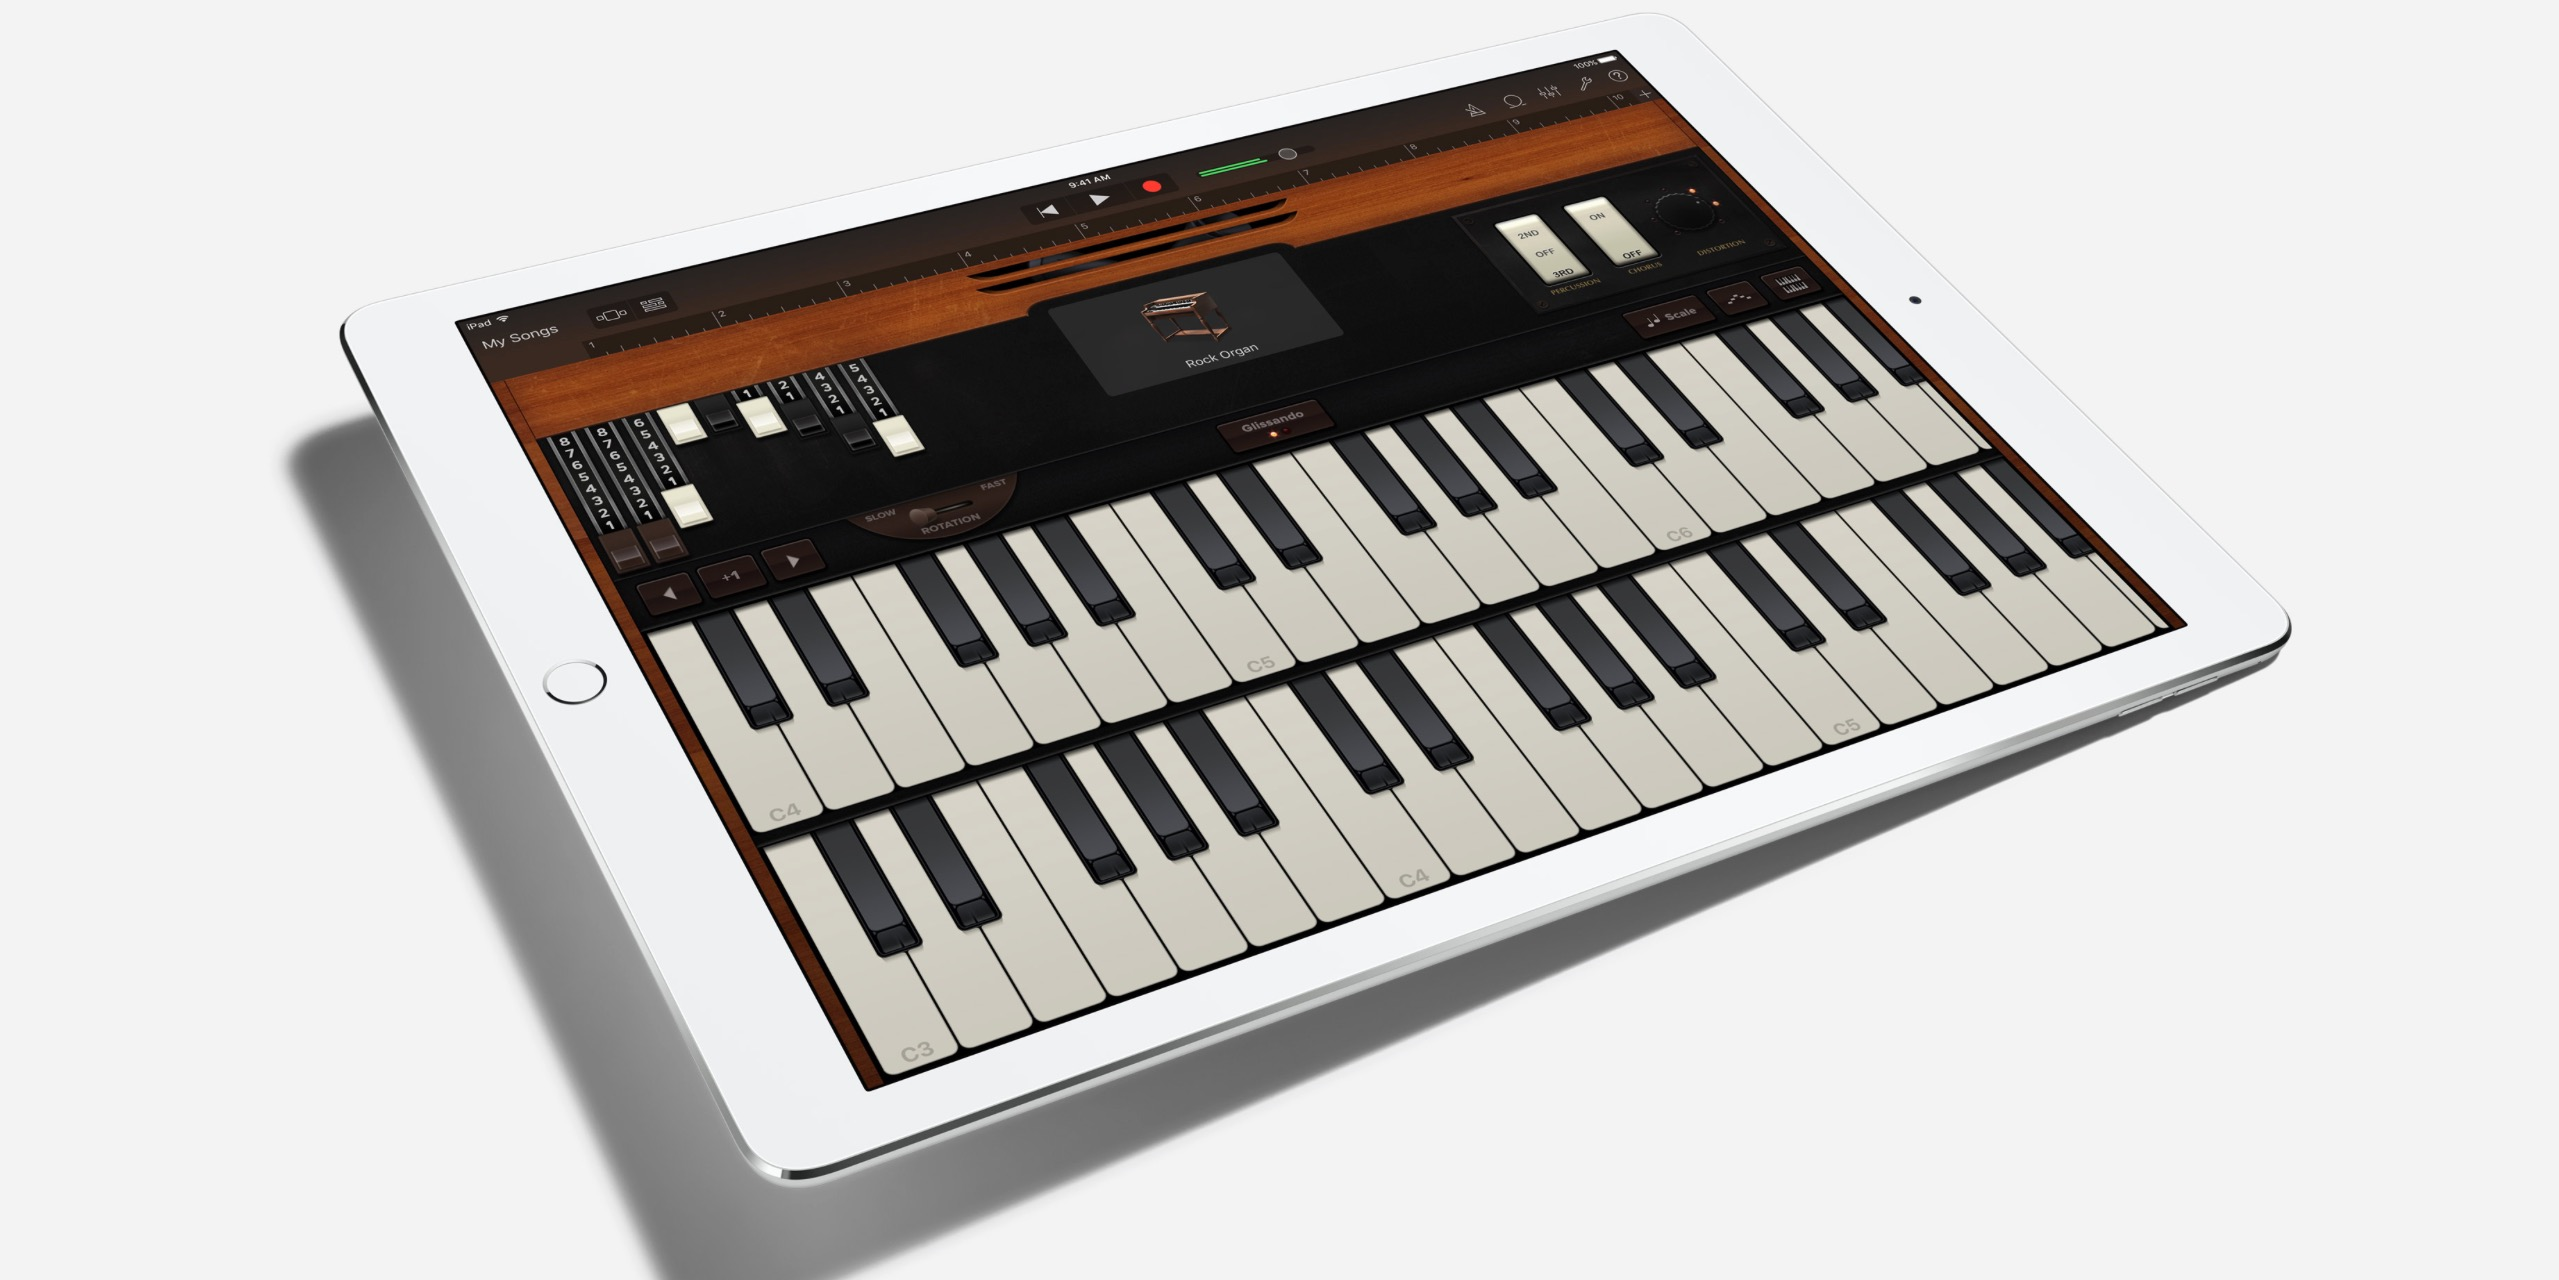 Garage Band Keyboard : Apple enhancing garageband for ipad pro adding d touch for